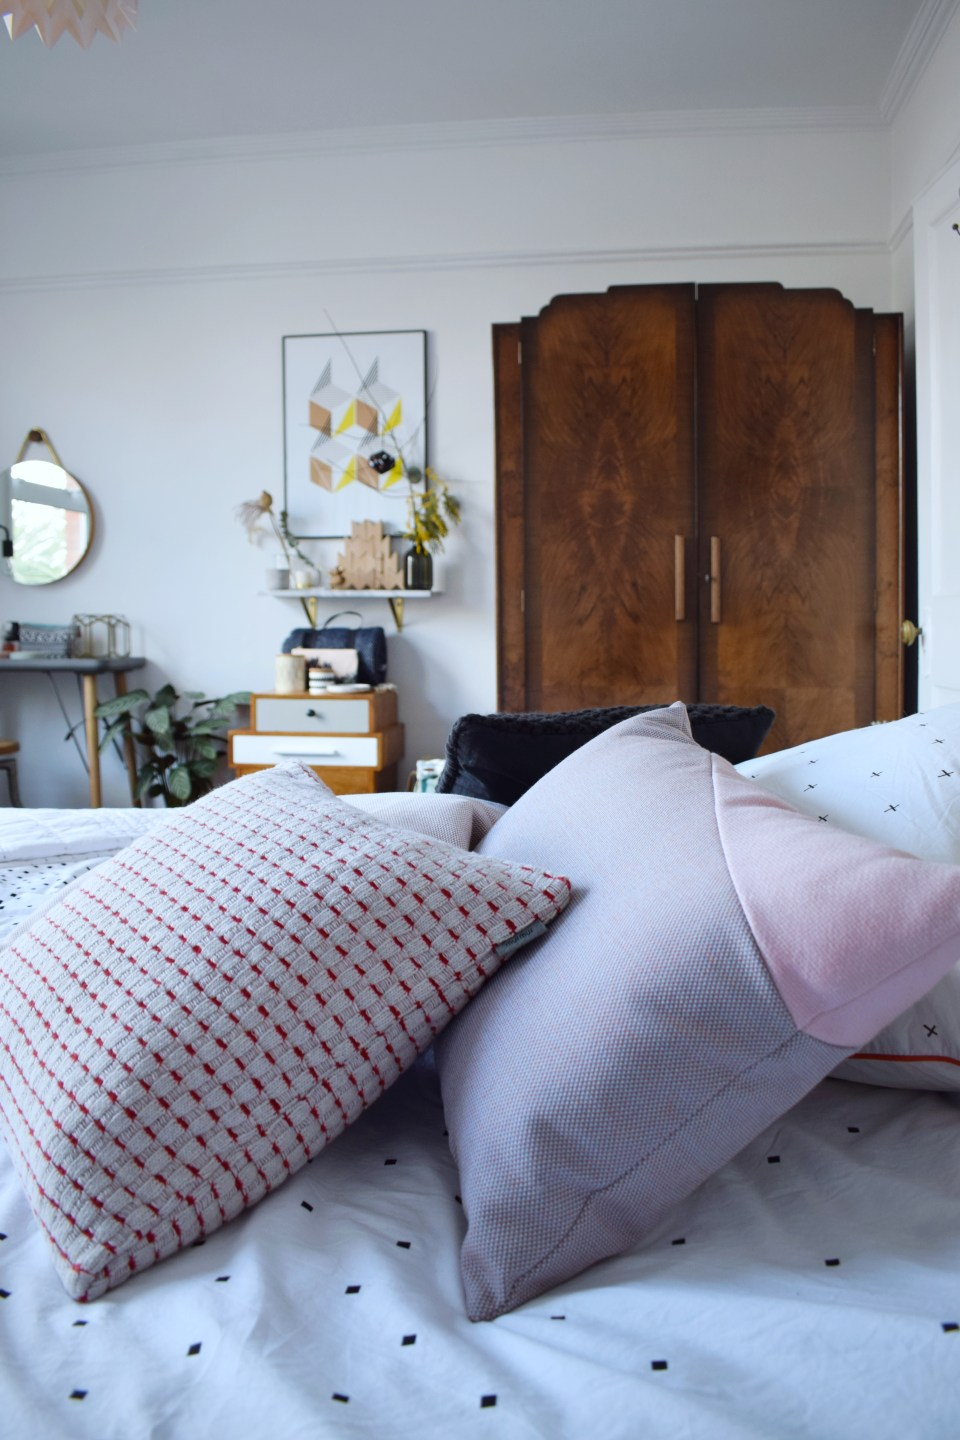 ideas and inspiration home decor - Scandinavian bohemian white and soft tones natural elements bedroom pastel pillows and vintage inlaid wood wardrobe (2)